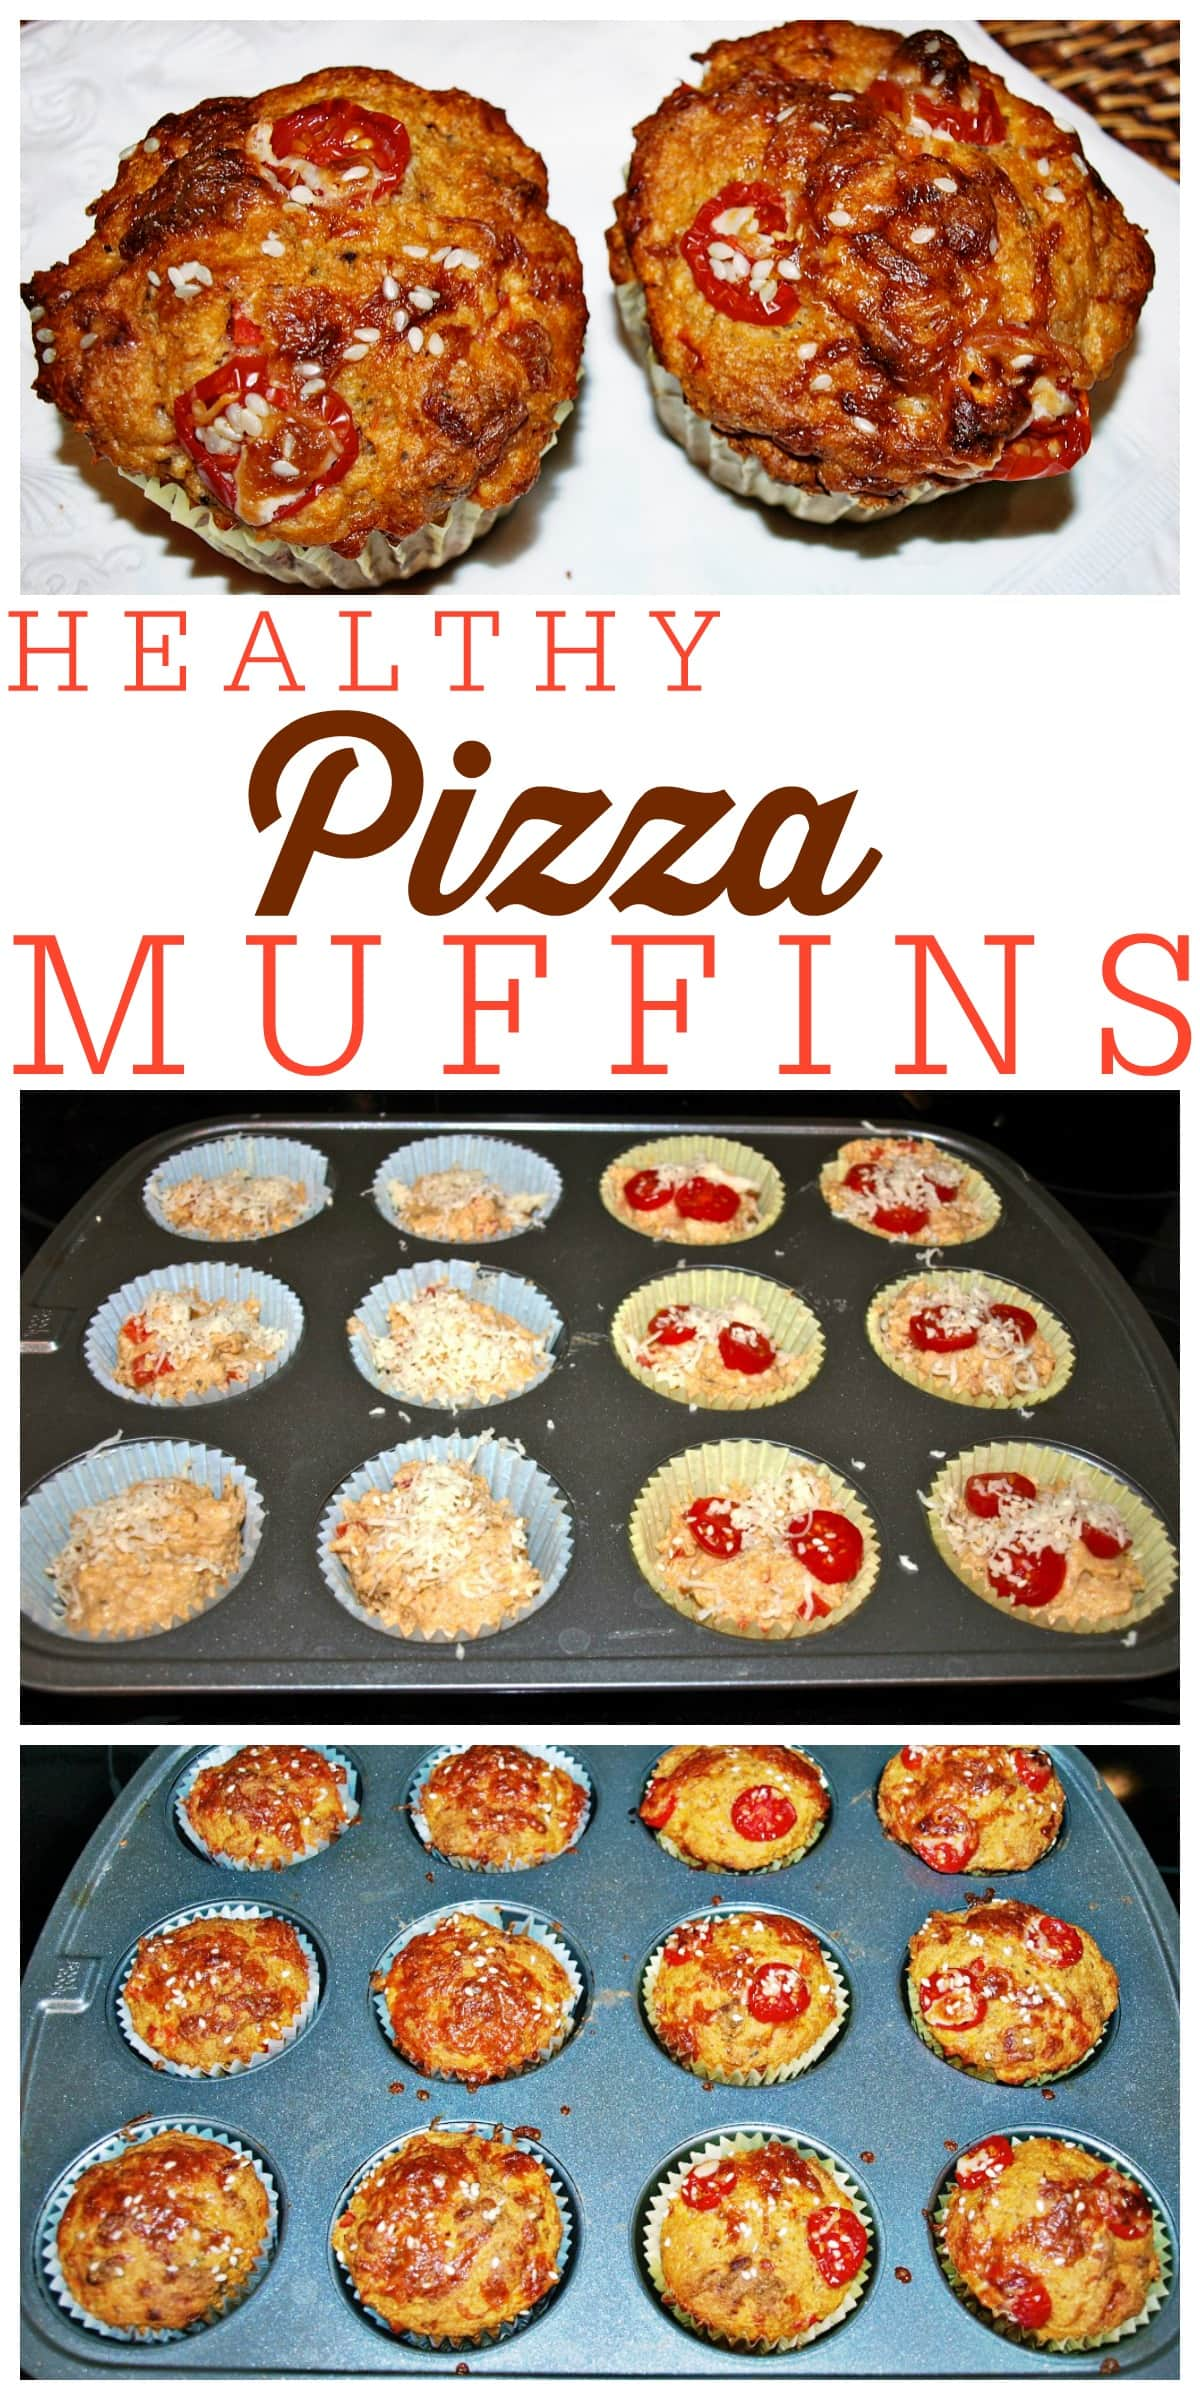 These Healthy Pizza Muffins are great for school lunches, snacks, or anytime you need a portable bite to eat! A great healthy and kid-friendly recipe .